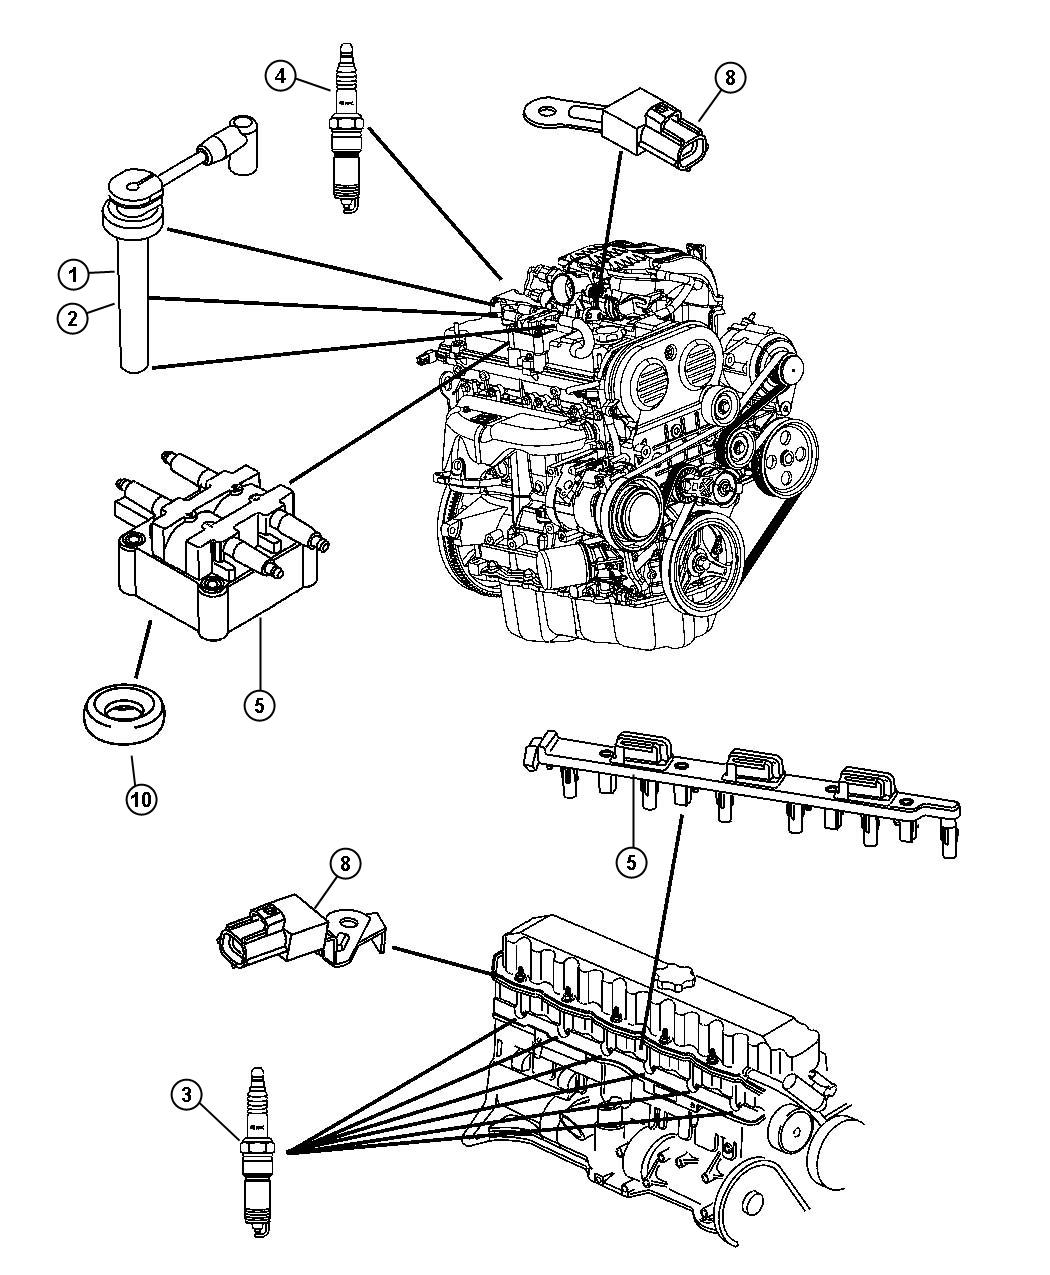 Jeep Wrangler Coil. Ignition. Spark, plugs, coils